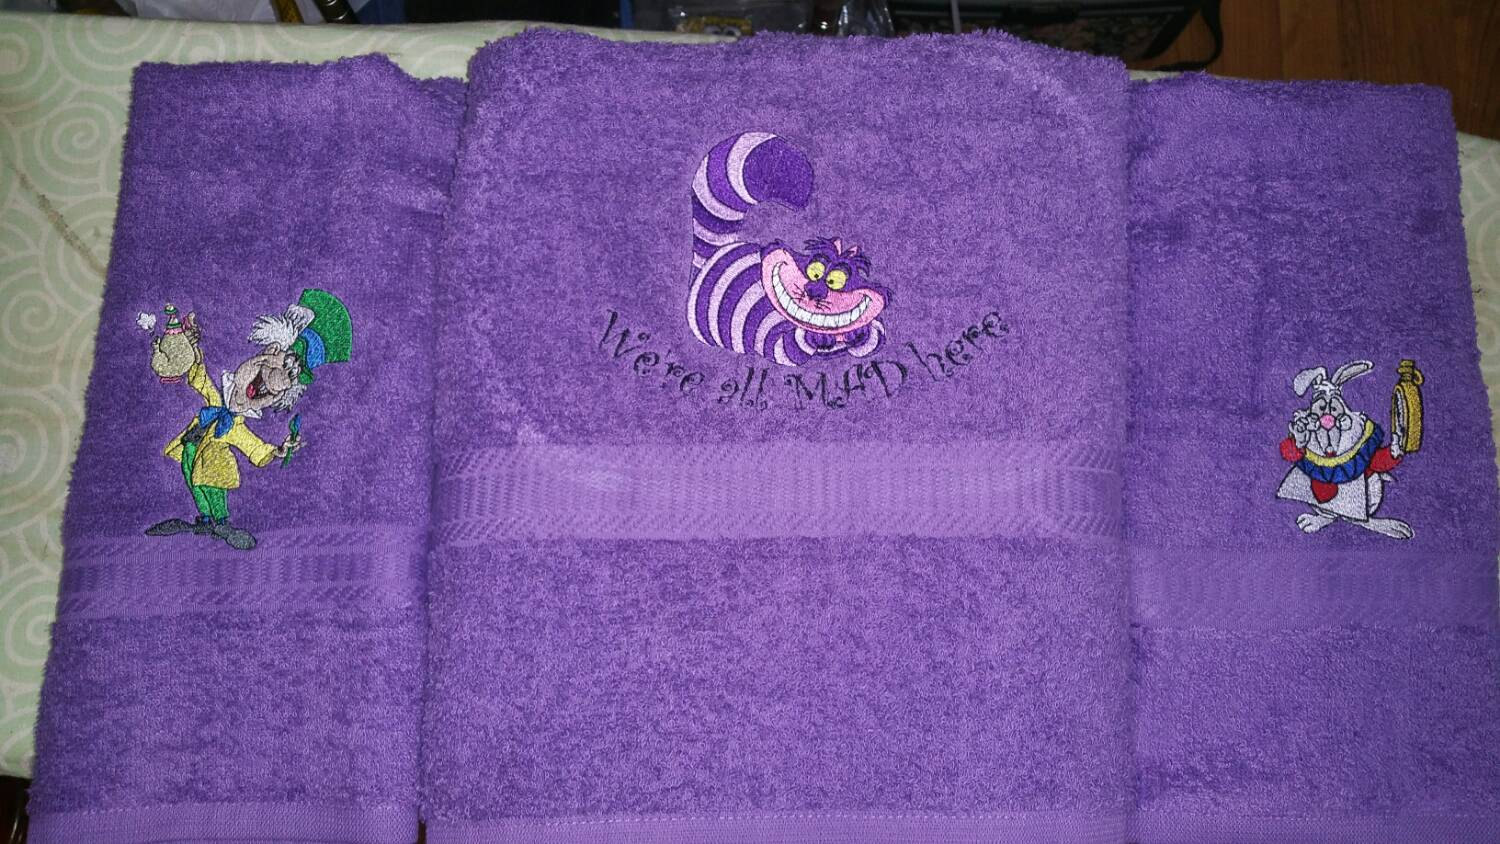 Cat, Rabbit and Mad Hatter embroidered on bath towels